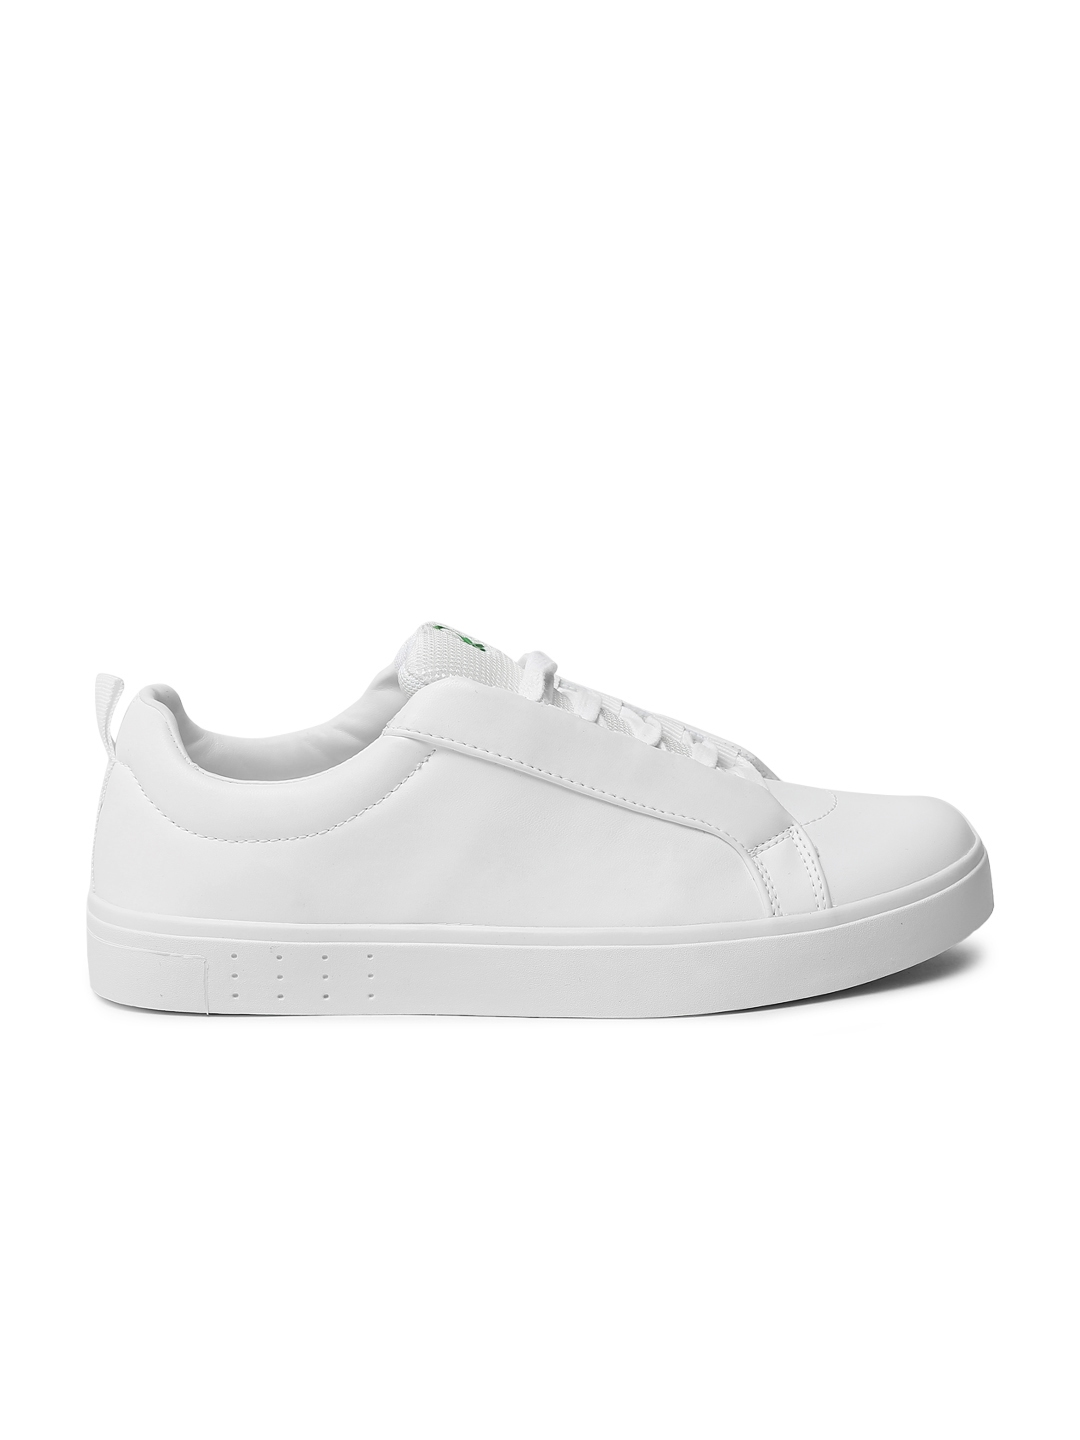 43c6cd06747 Buy United Colors Of Benetton Men White Sneakers - Casual Shoes for ...